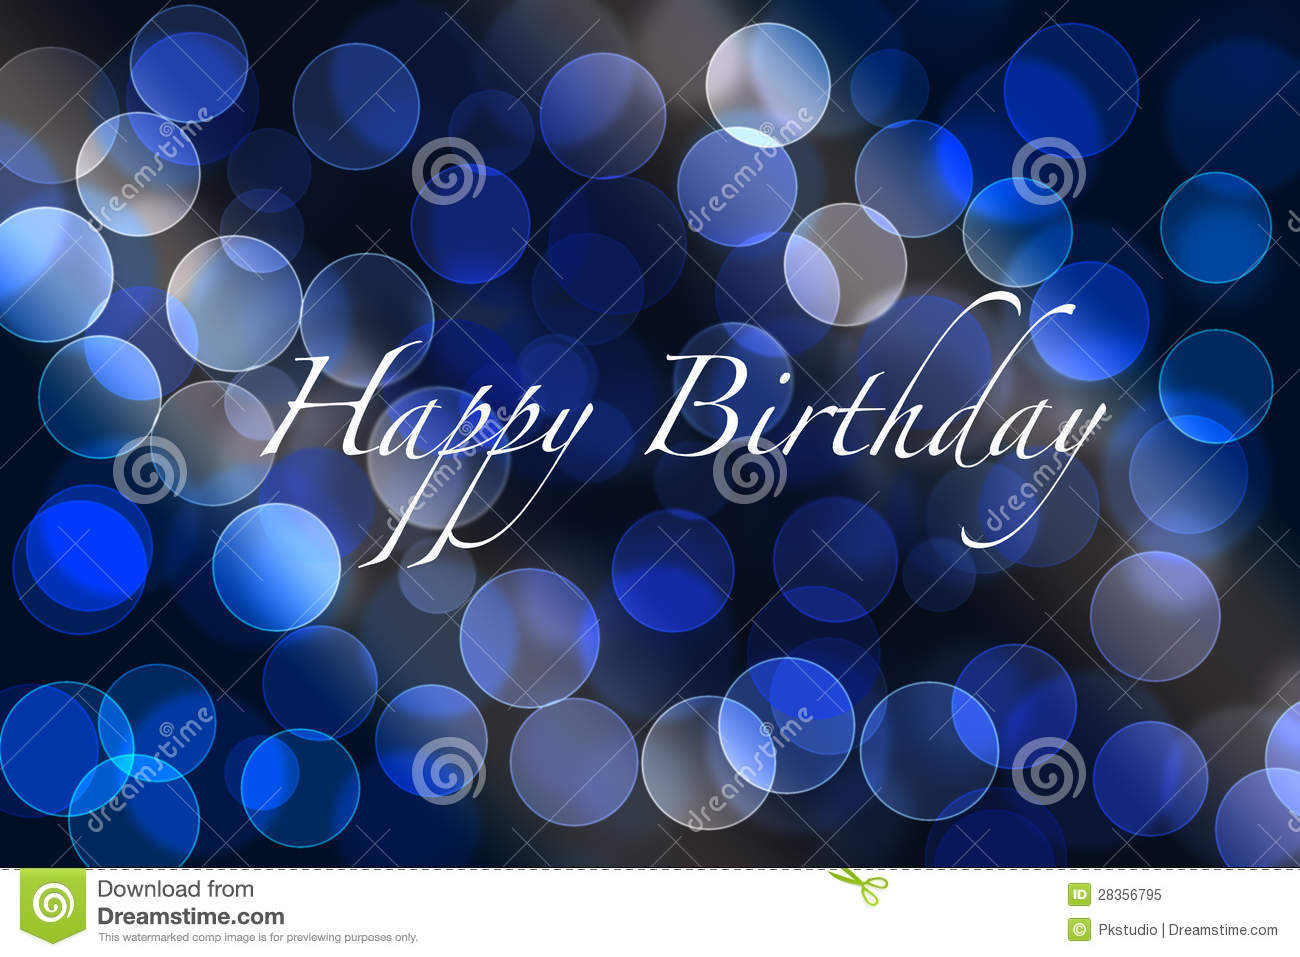 background images for birthday greetings ; birthday-greetings-background-28356795